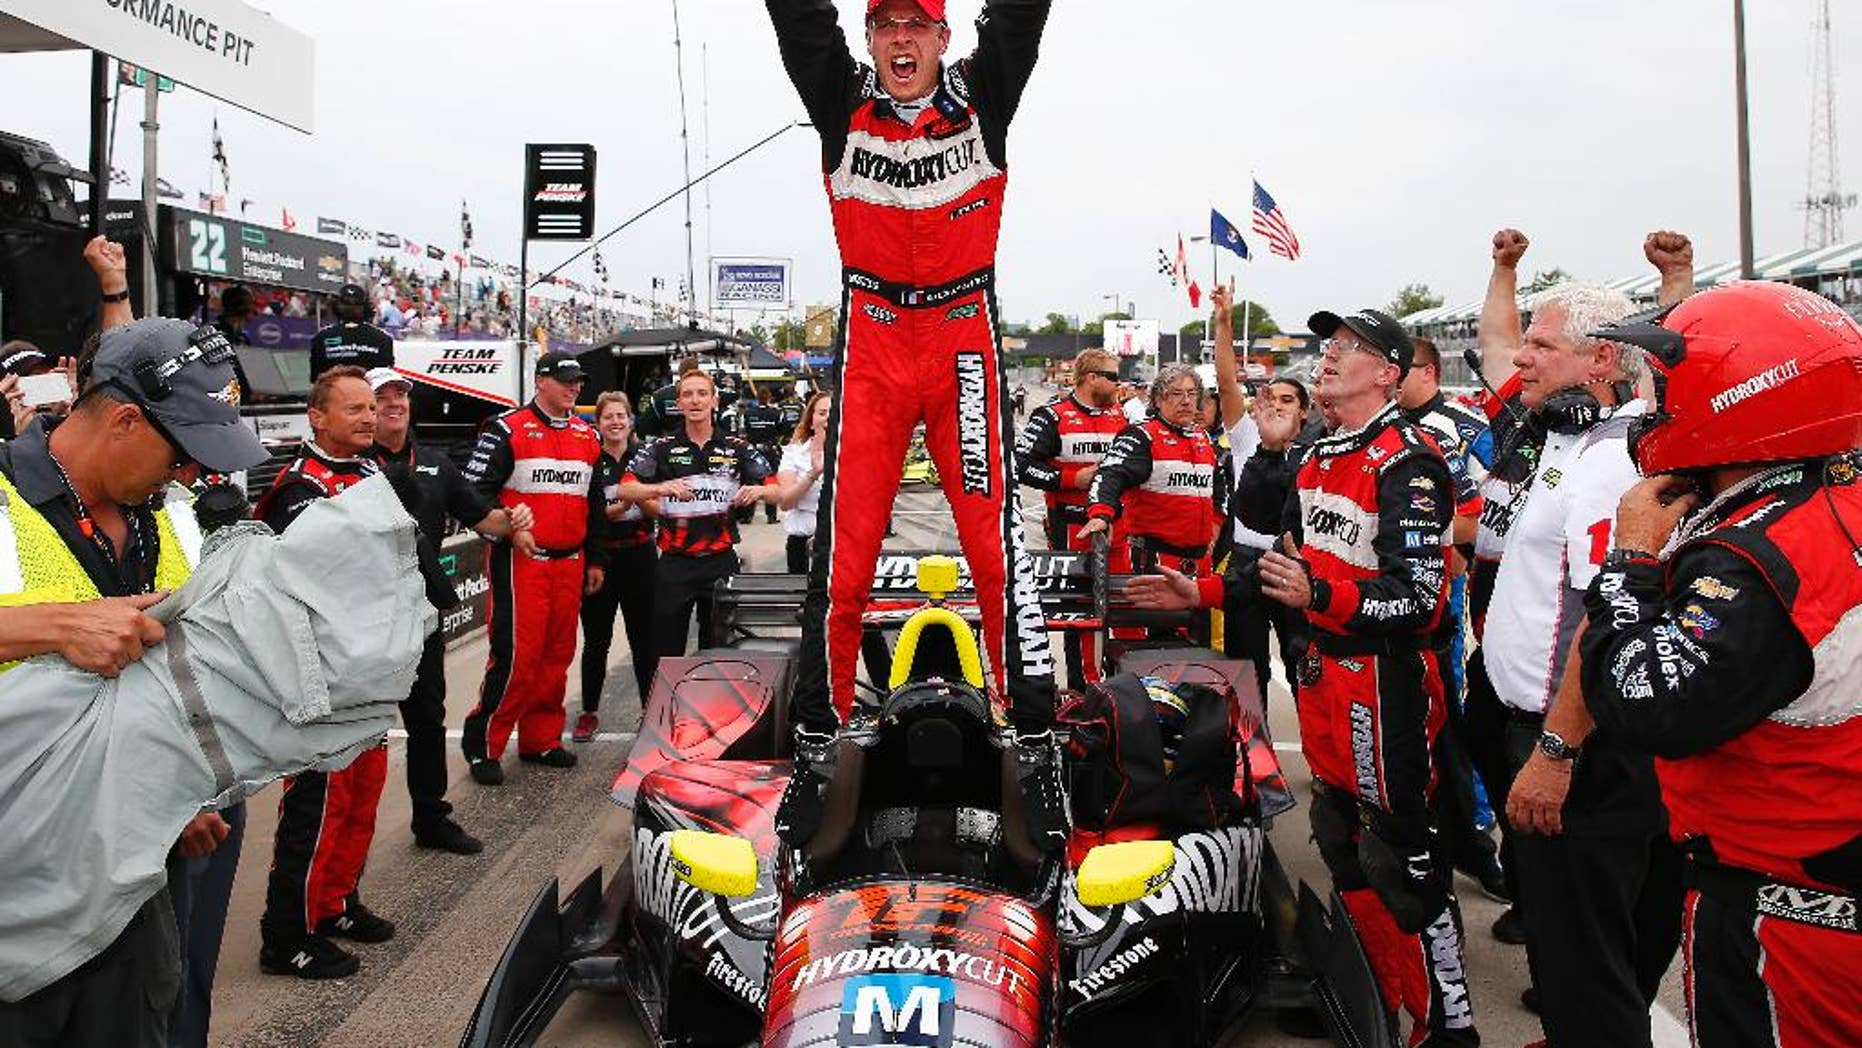 """FILE - In this June 4, 2016 file photo, Sebastien Bourdais, of France, celebrates winning race one of the IndyCar Detroit Grand Prix auto racing double header on Belle Isle in Detroit.  Bourdais speaks reverently about the Le Mans 24 Race in his native France, as if some mythical force has a hand in the competition. """"I don't know what's the criteria ... All I can tell you is Le Mans picks its winner,"""" Bourdais said. If that's the case, this year, the race finally picked him.  (AP Photo/Paul Sancya, File)"""